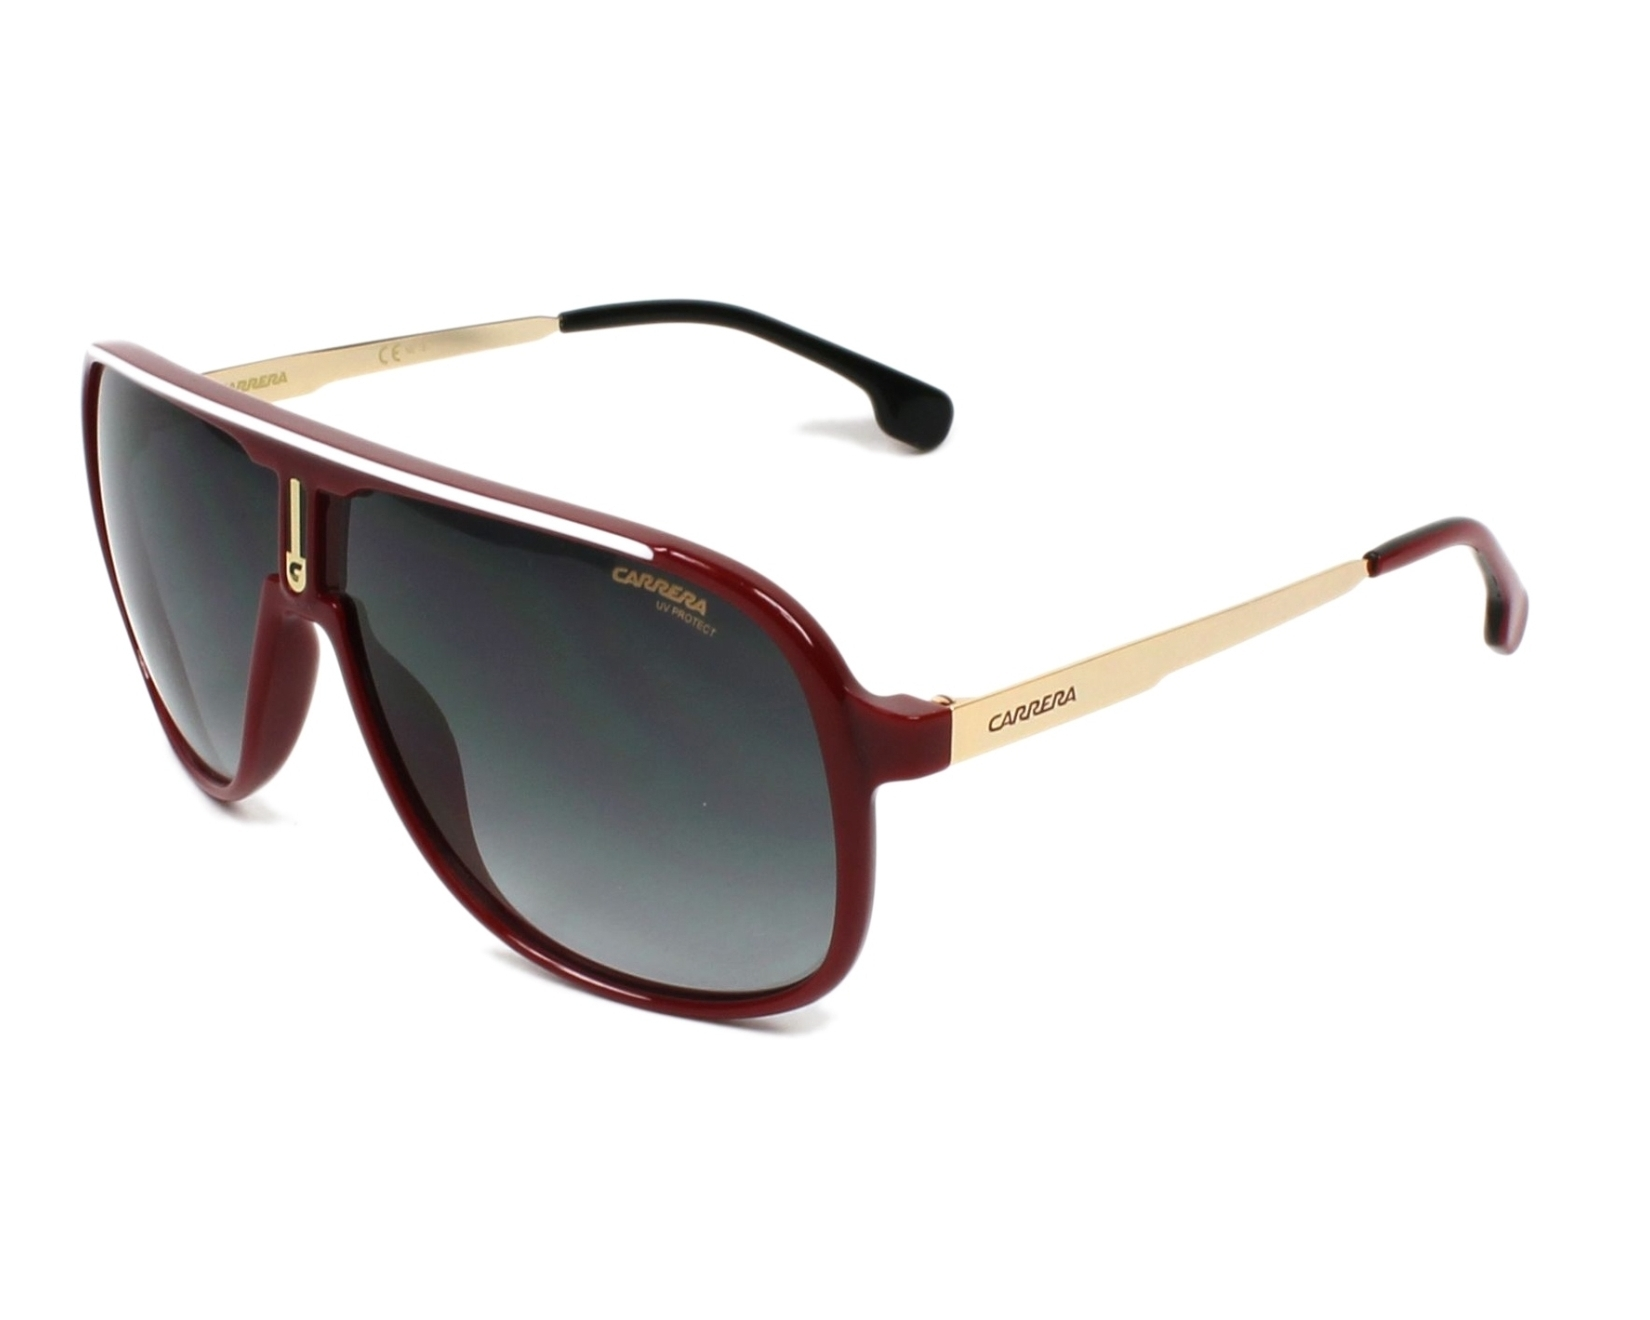 126641c20f Carrera - Buy Carrera sunglasses online at low prices